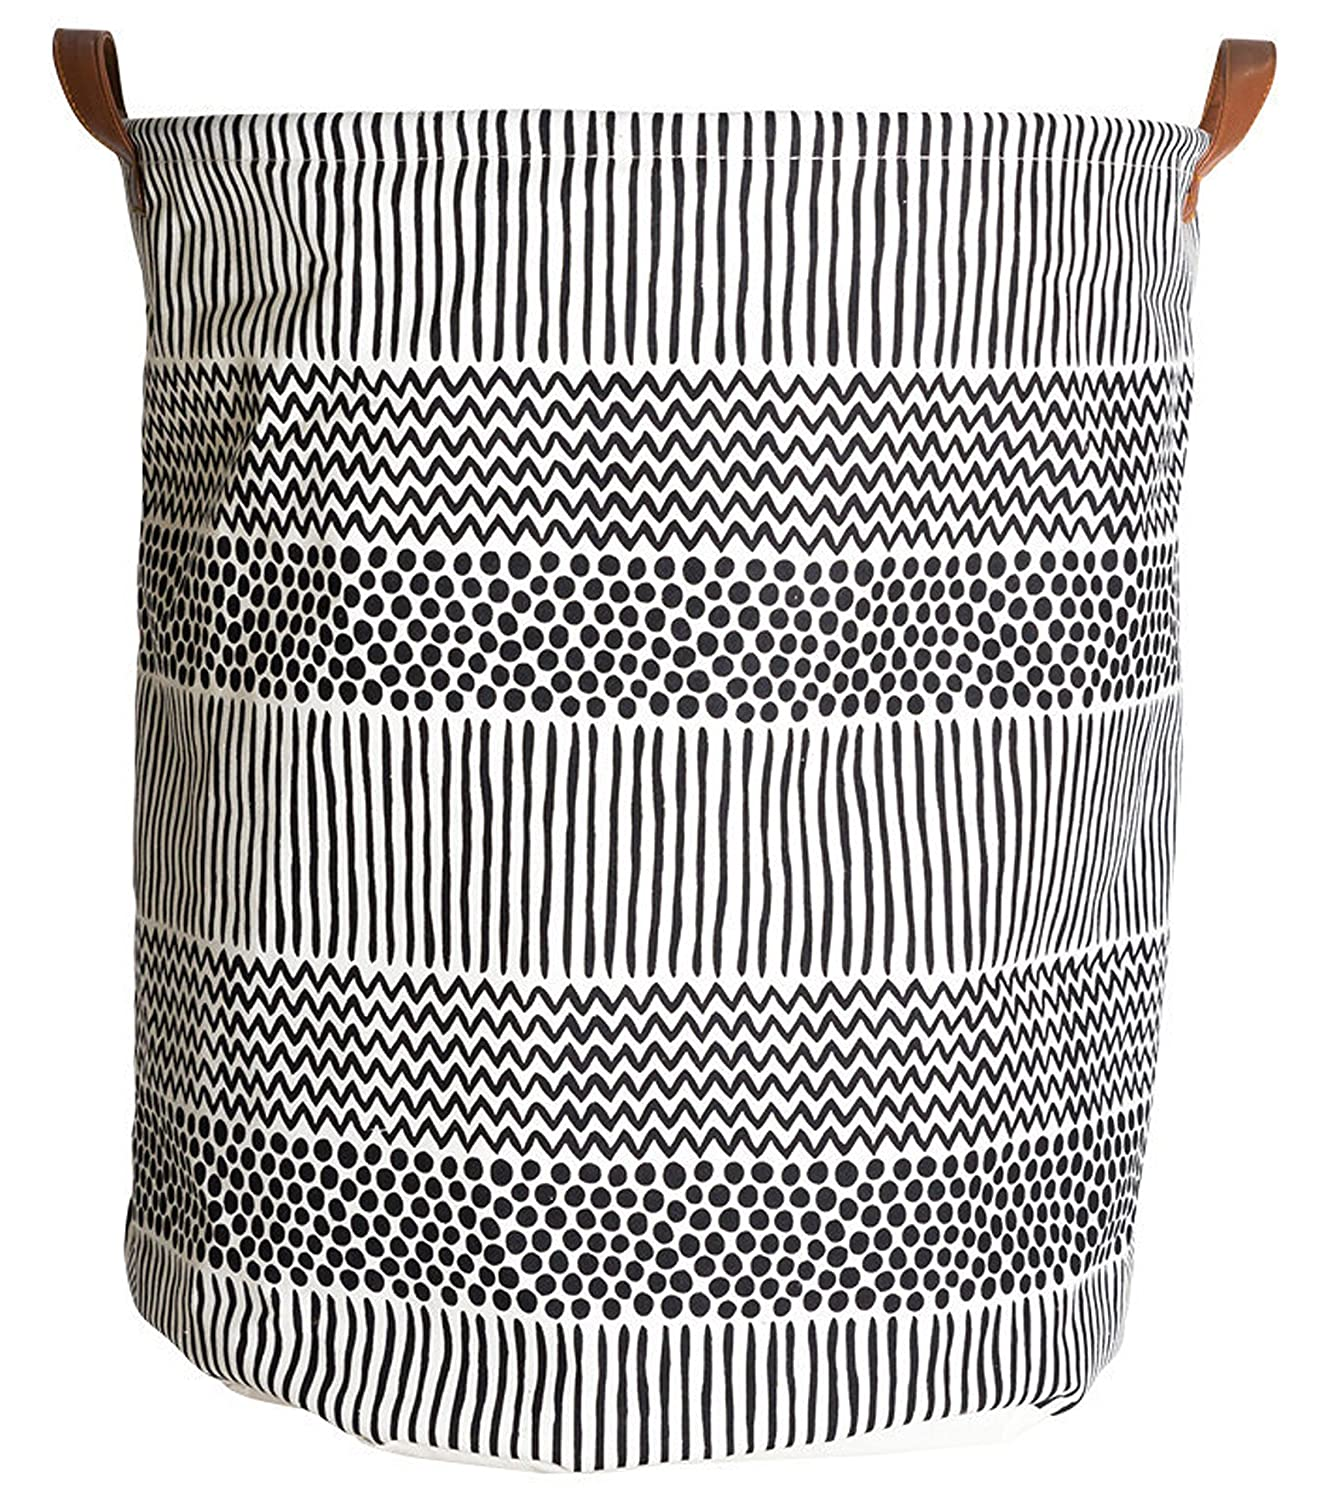 CLOCOR Round Storage Bin/Large Storage Basket/Collapsible Clothes Laundry Hamper/Toy Storage Bin(Black Spots)